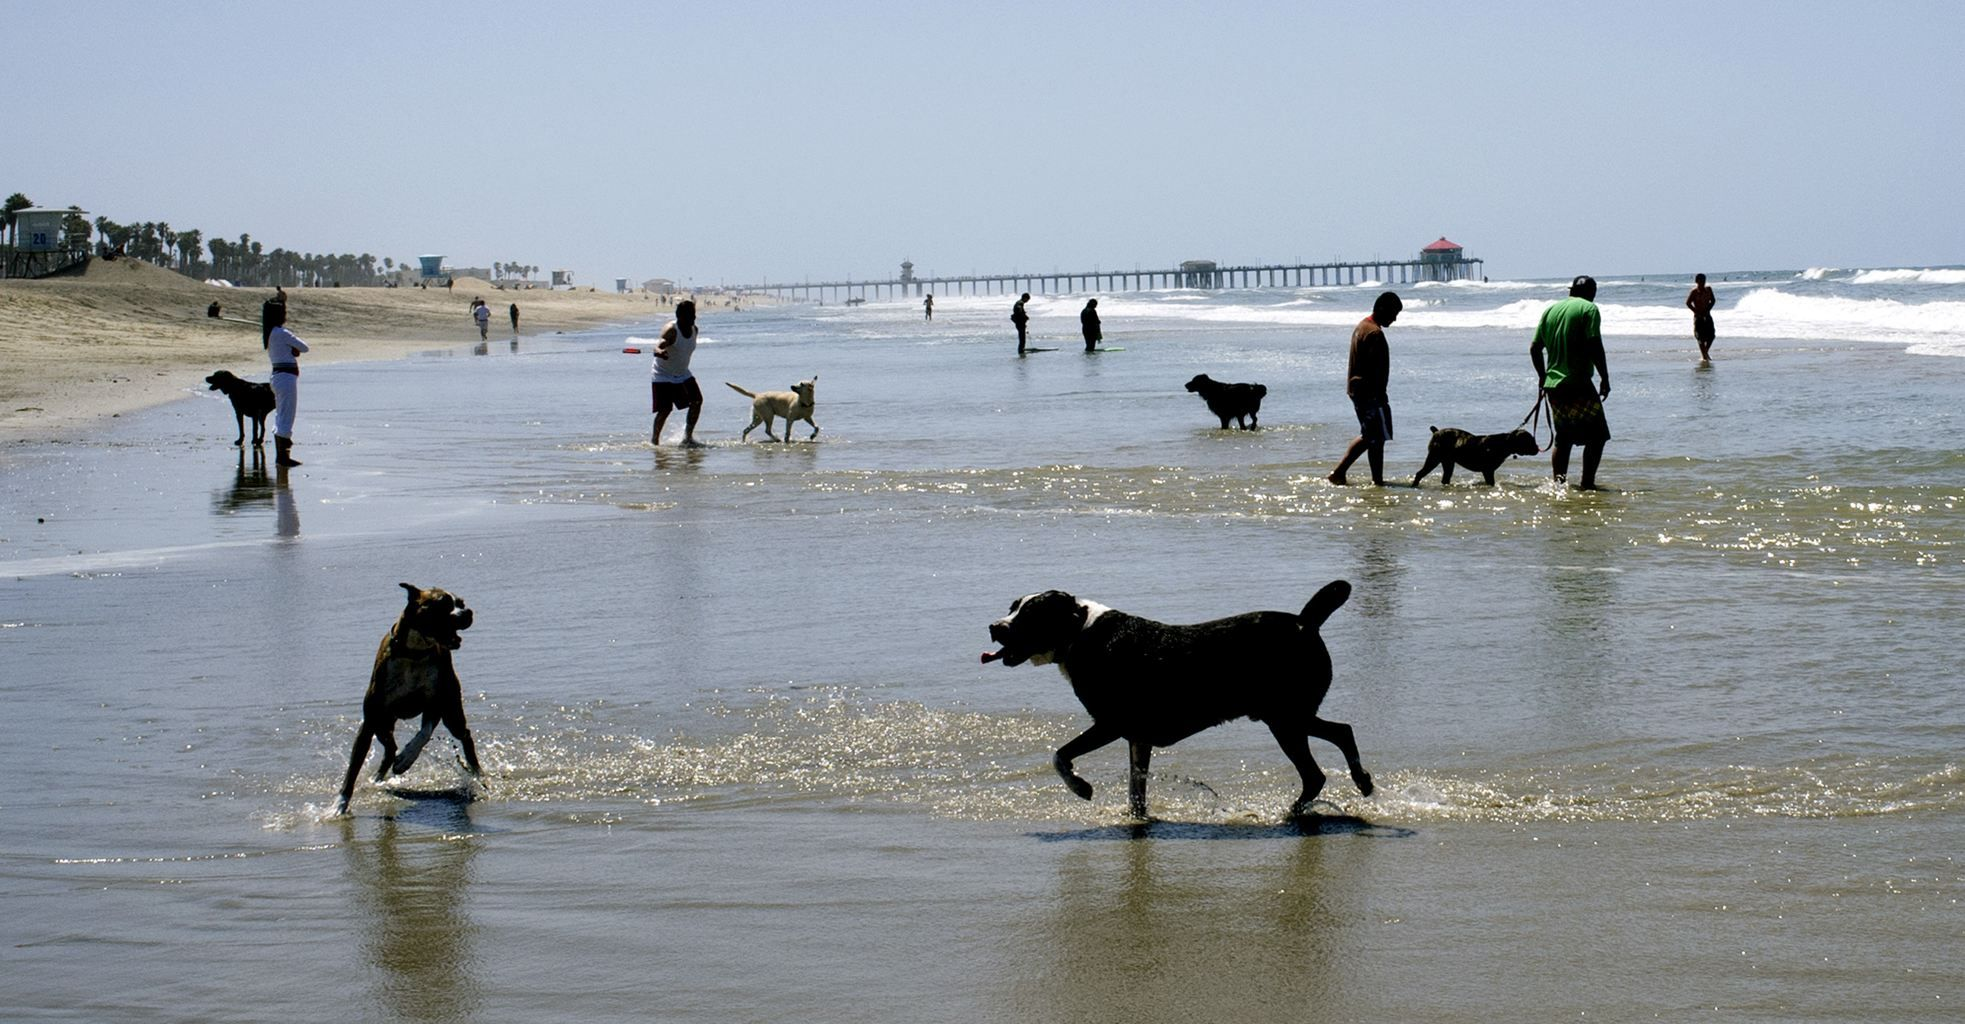 Lifes a beach for lucky dogs free to run on sand - Yahoo! News